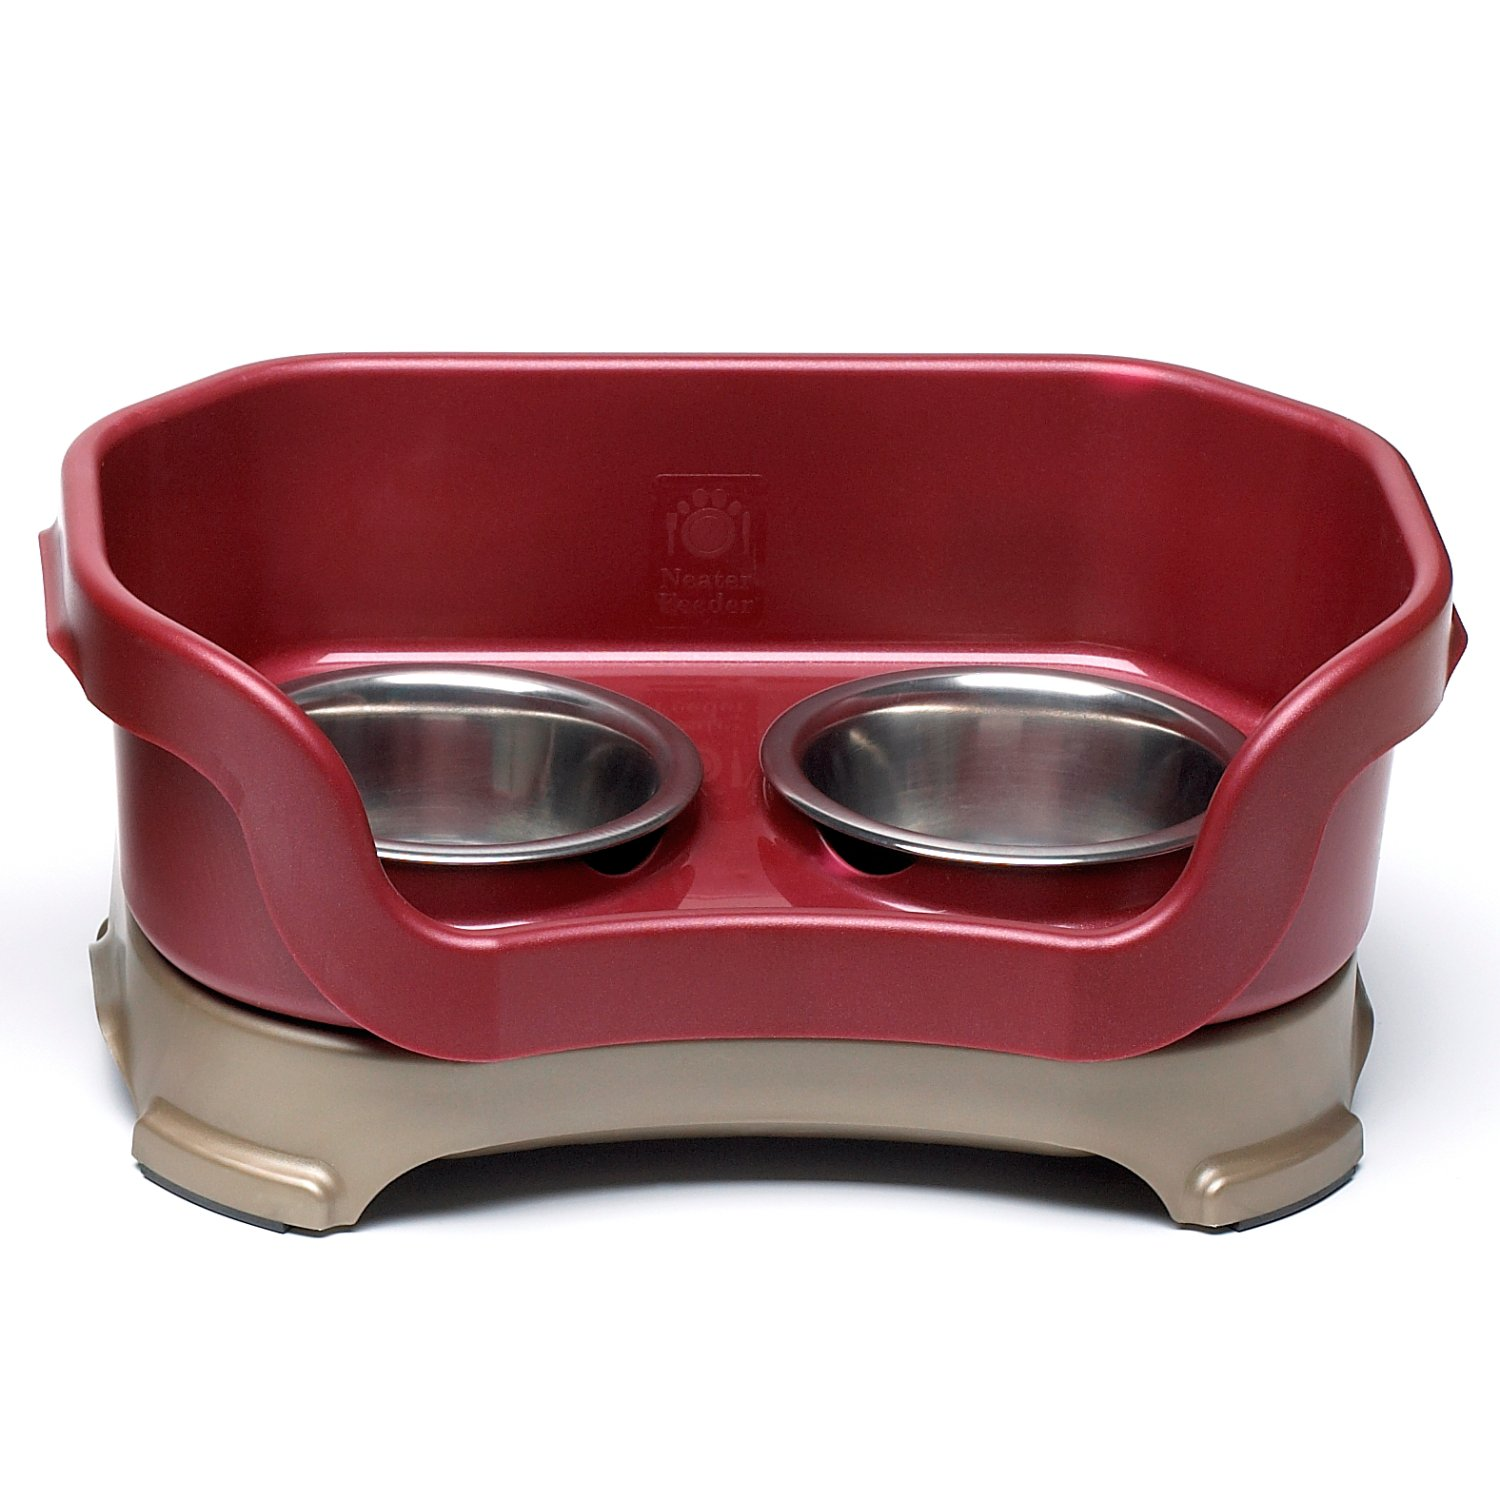 Neater Brands Cranberry Elevated Cat Diner Petco